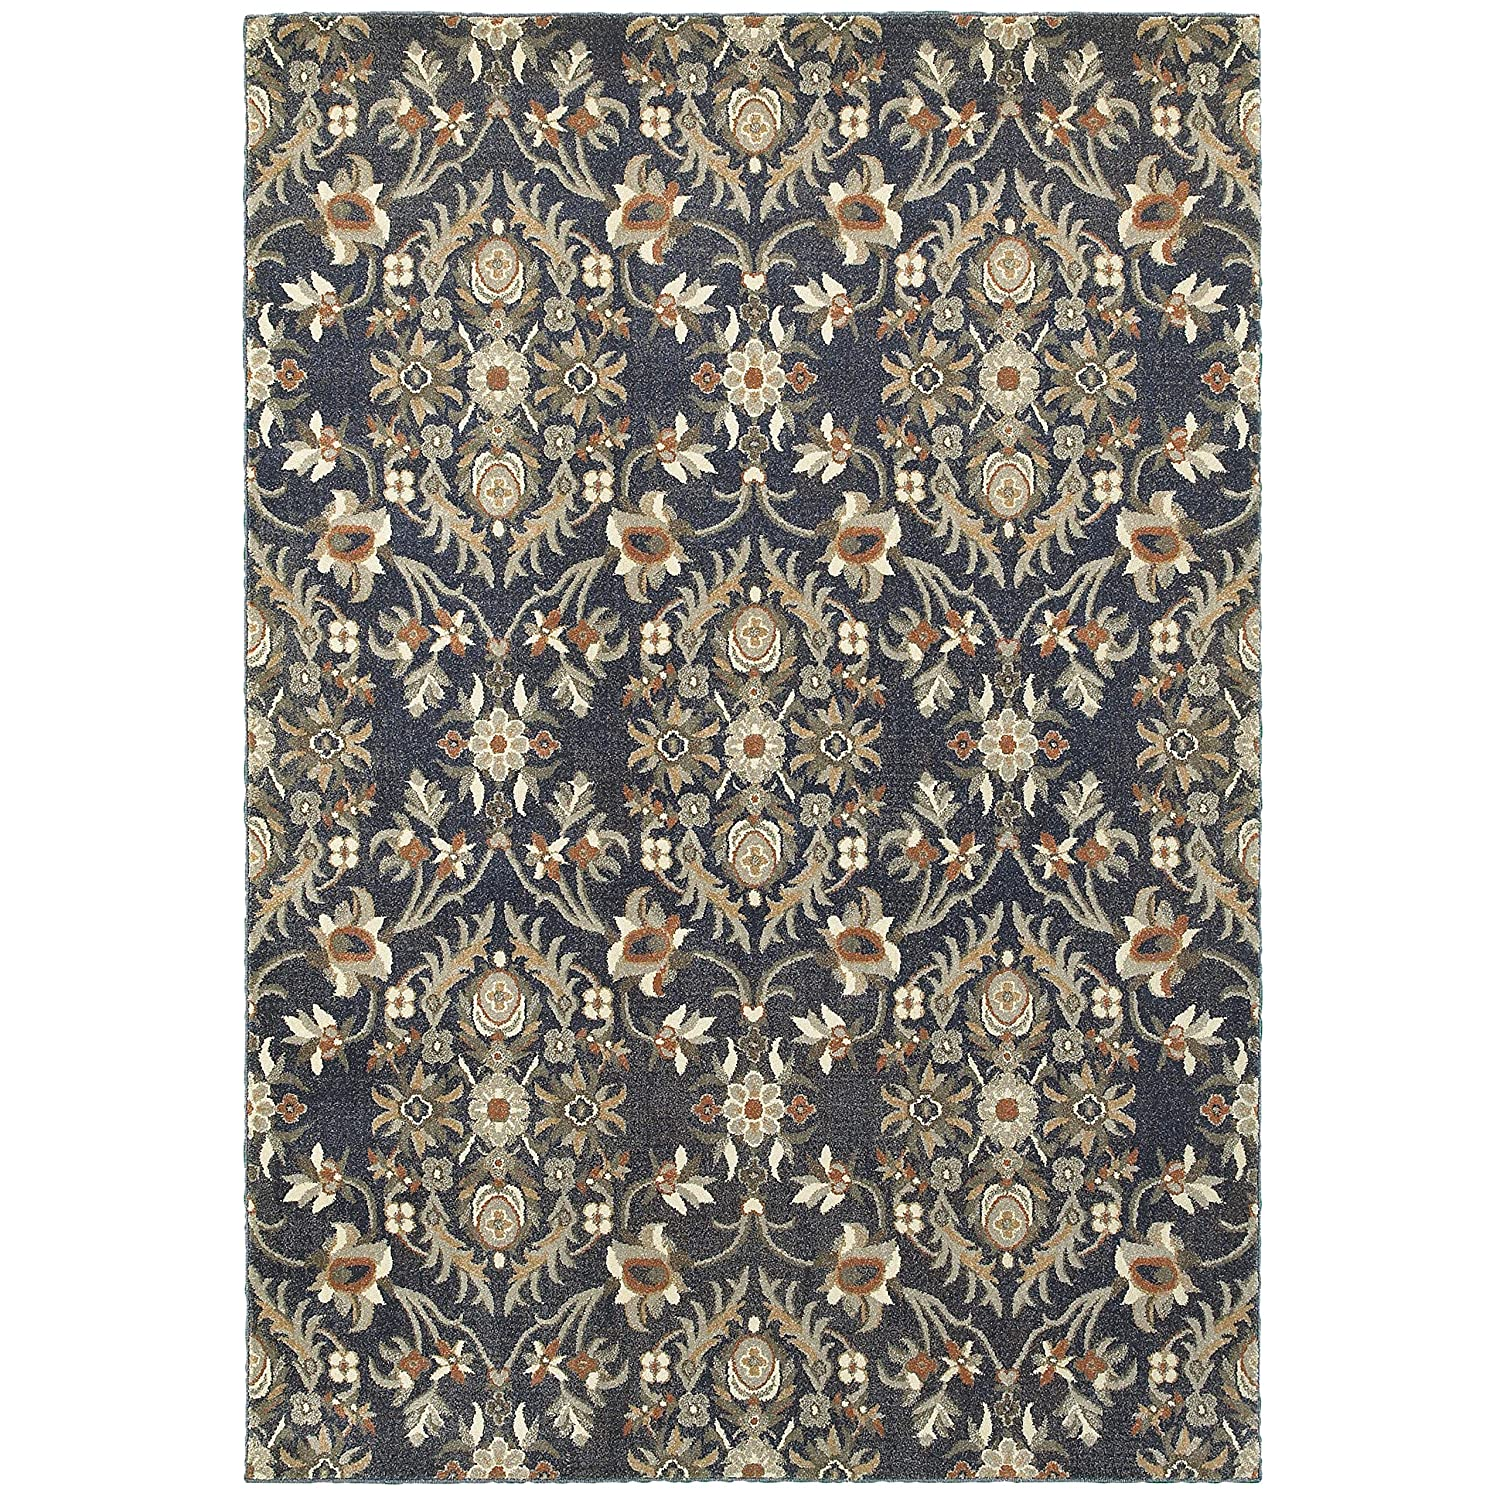 Christopher Knight Home CK-S8456 Paradise Lattice Indoor Area Rug 7ft 10in X 10ft 10in Blue Brown